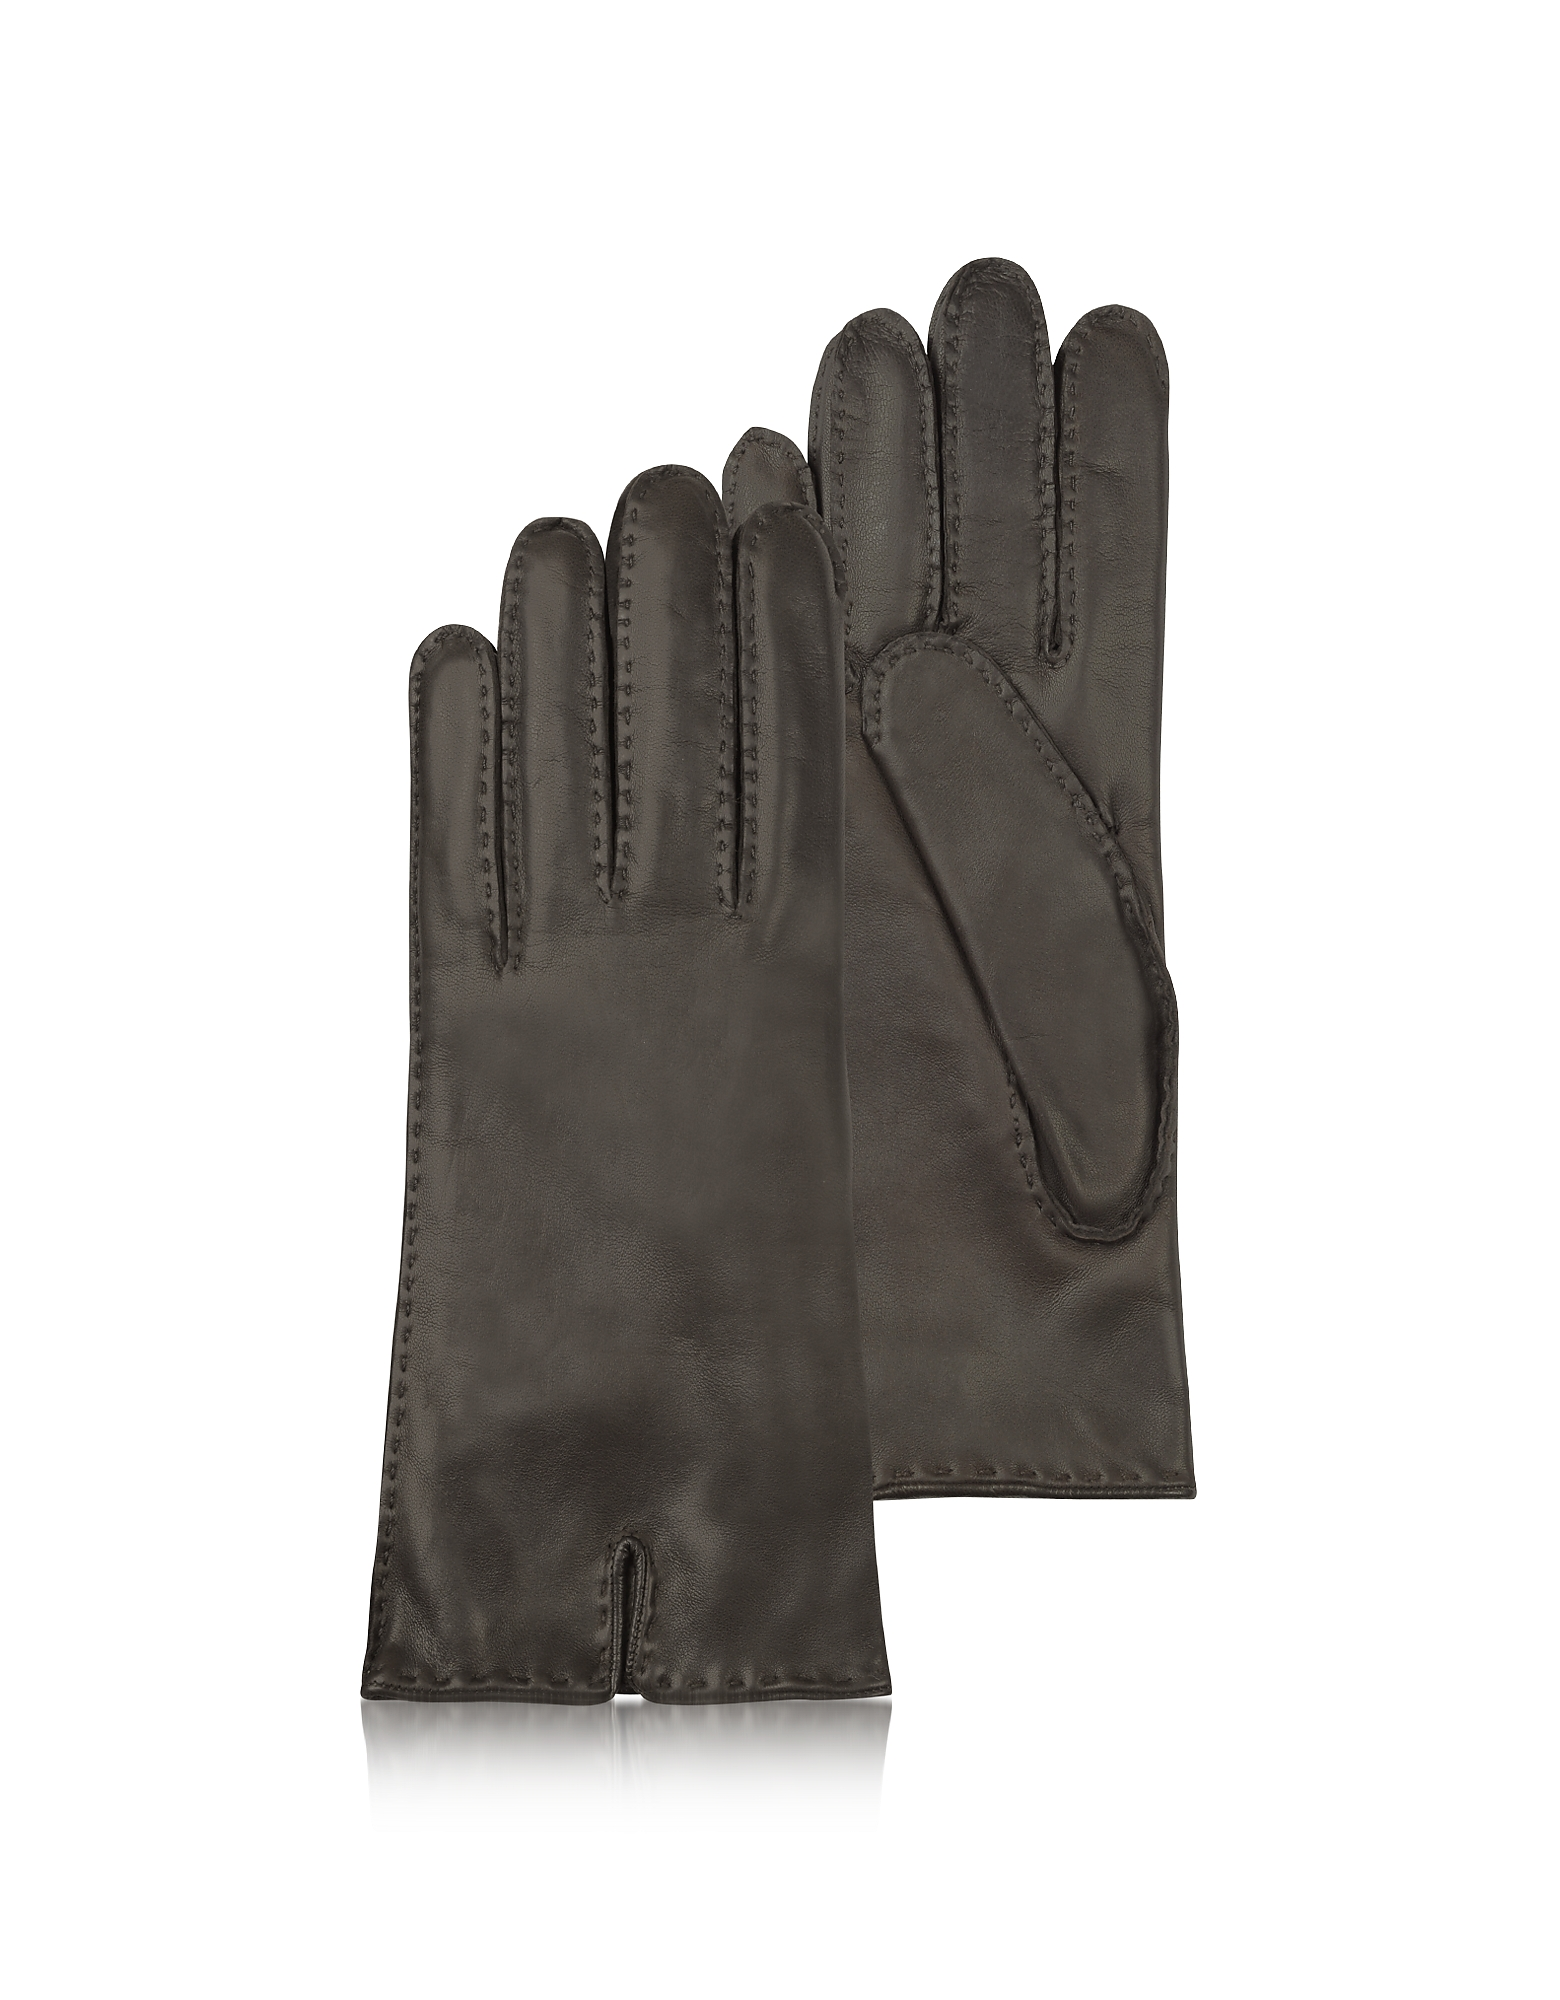 Forzieri Women's Gloves, Women's Cashmere Lined Dark Brown Italian Leather Gloves